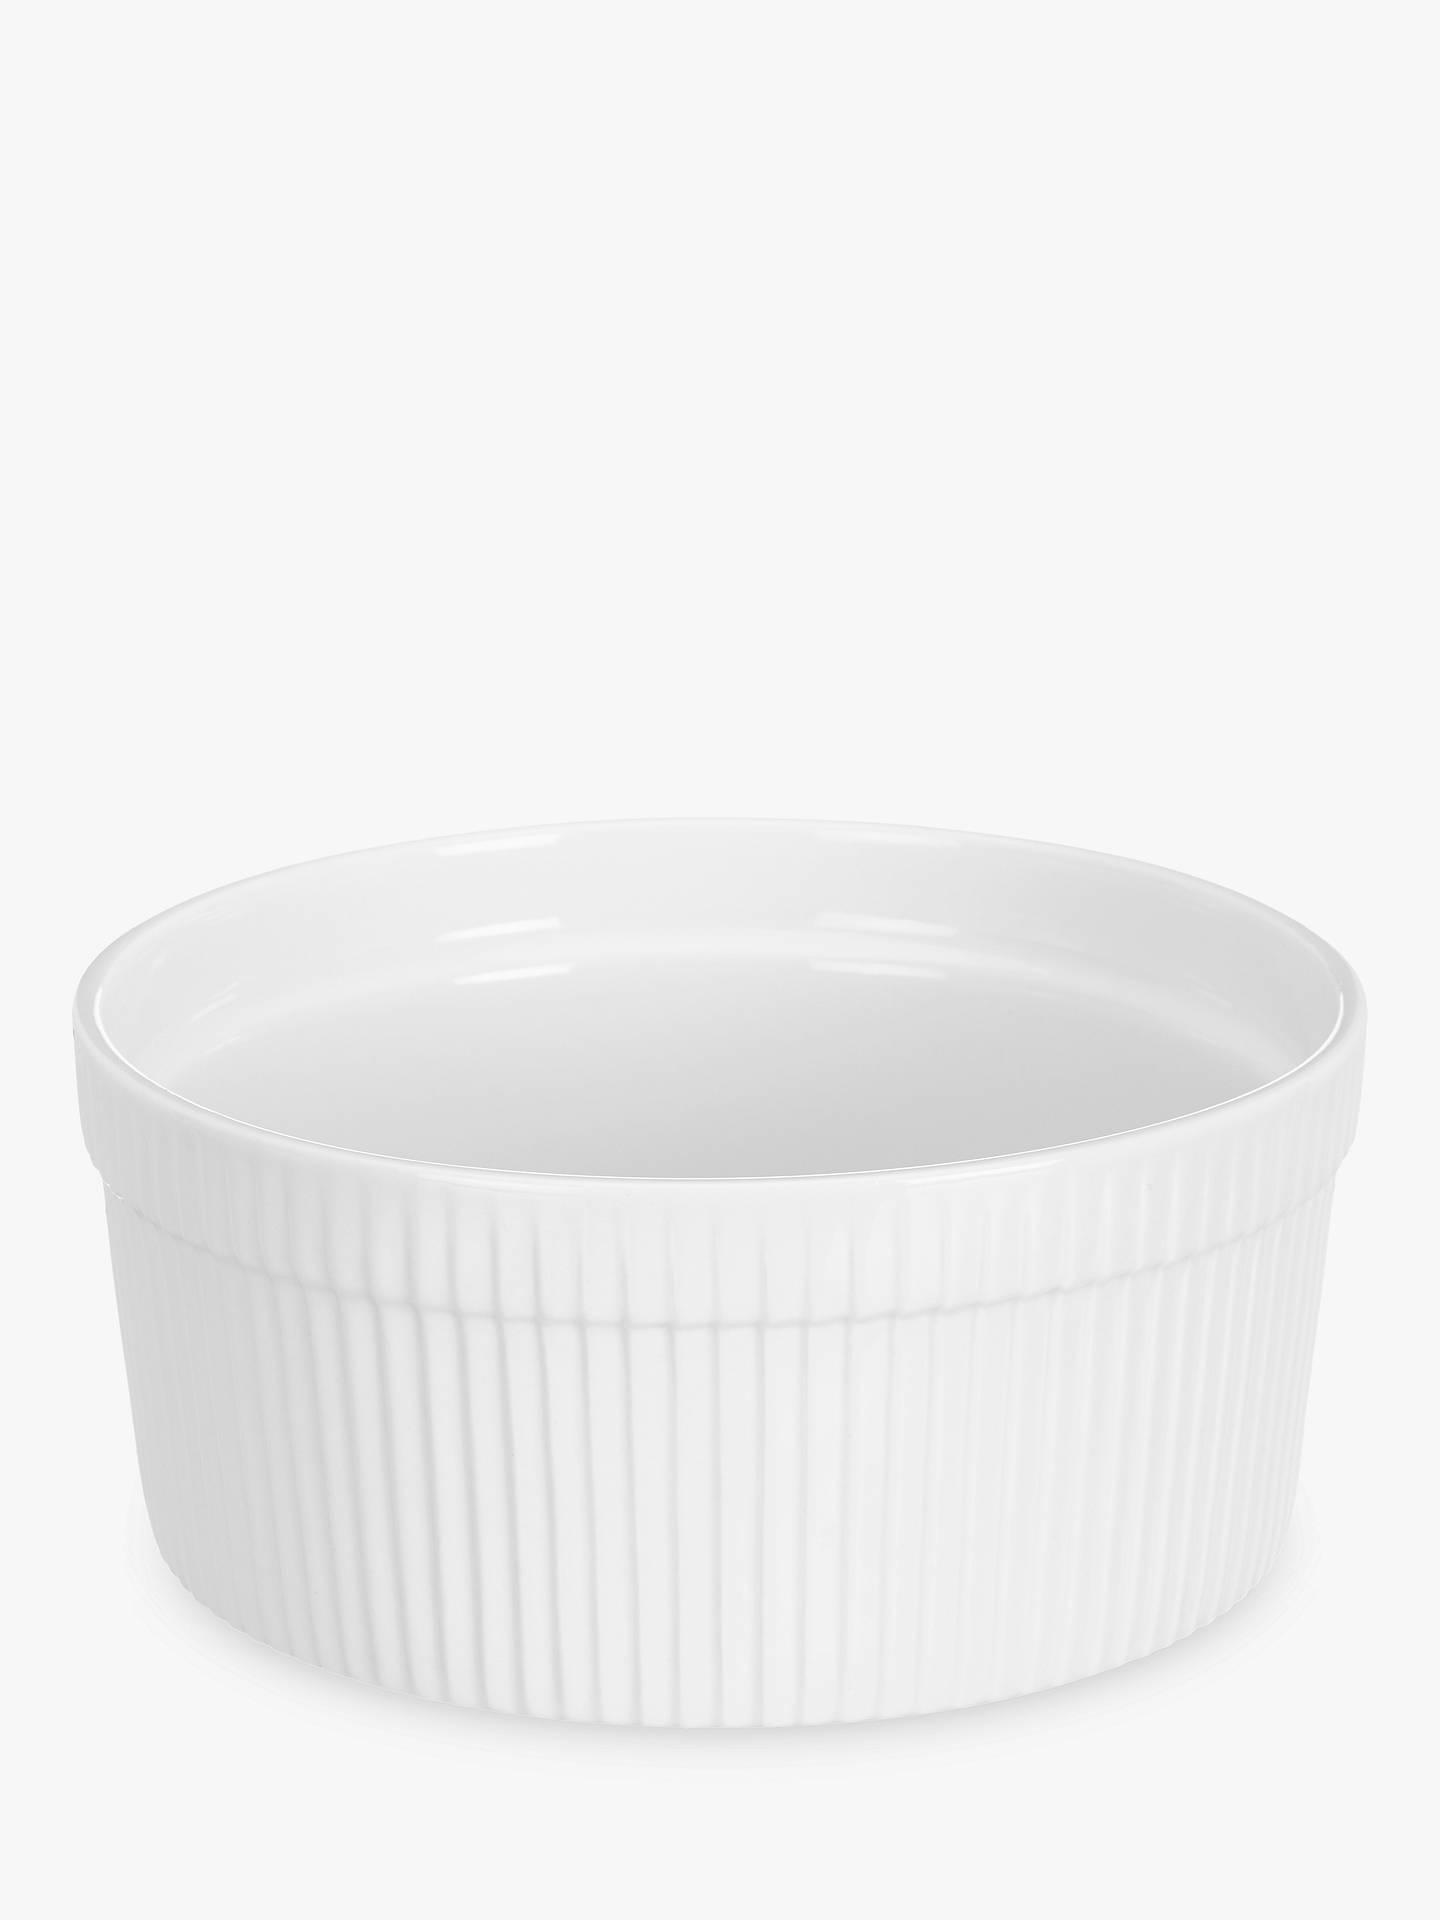 Buy John Lewis & Partners Porcelain Round Soufflé Oven Dish, 19cm, Set of 2, White Online at johnlewis.com